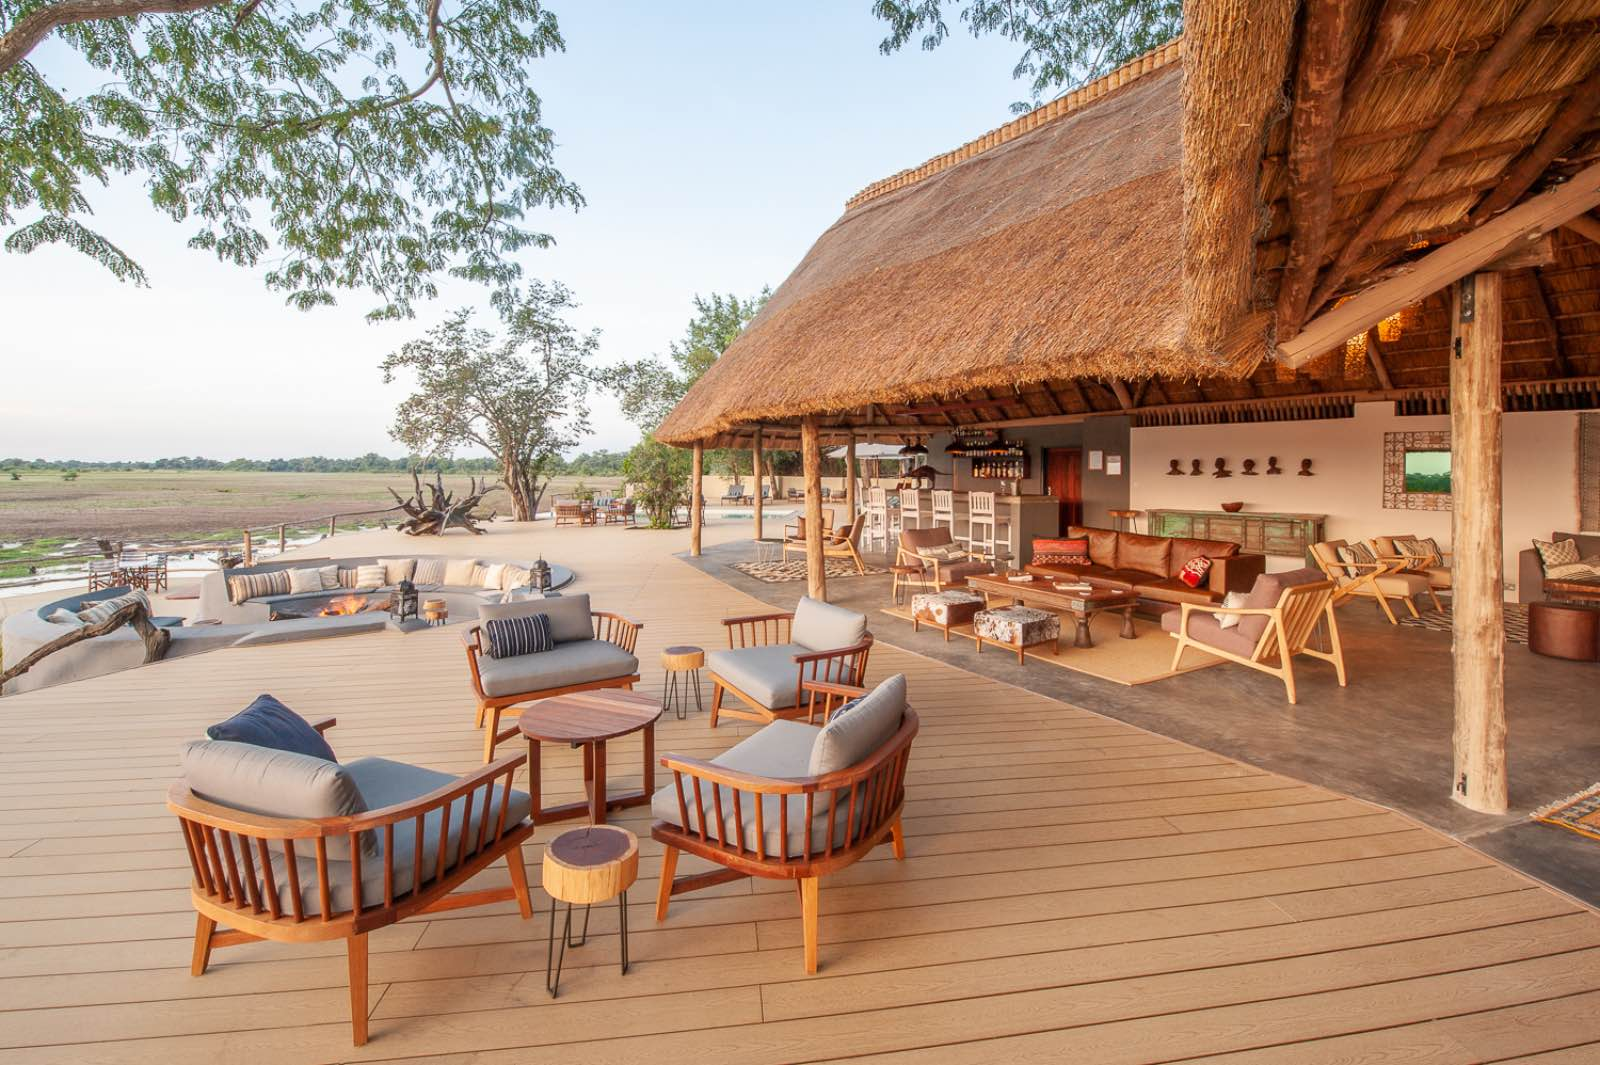 The expansive deck at Kafunta River Lodge offering plenty of places to sit and relax in the peaceful surroundings